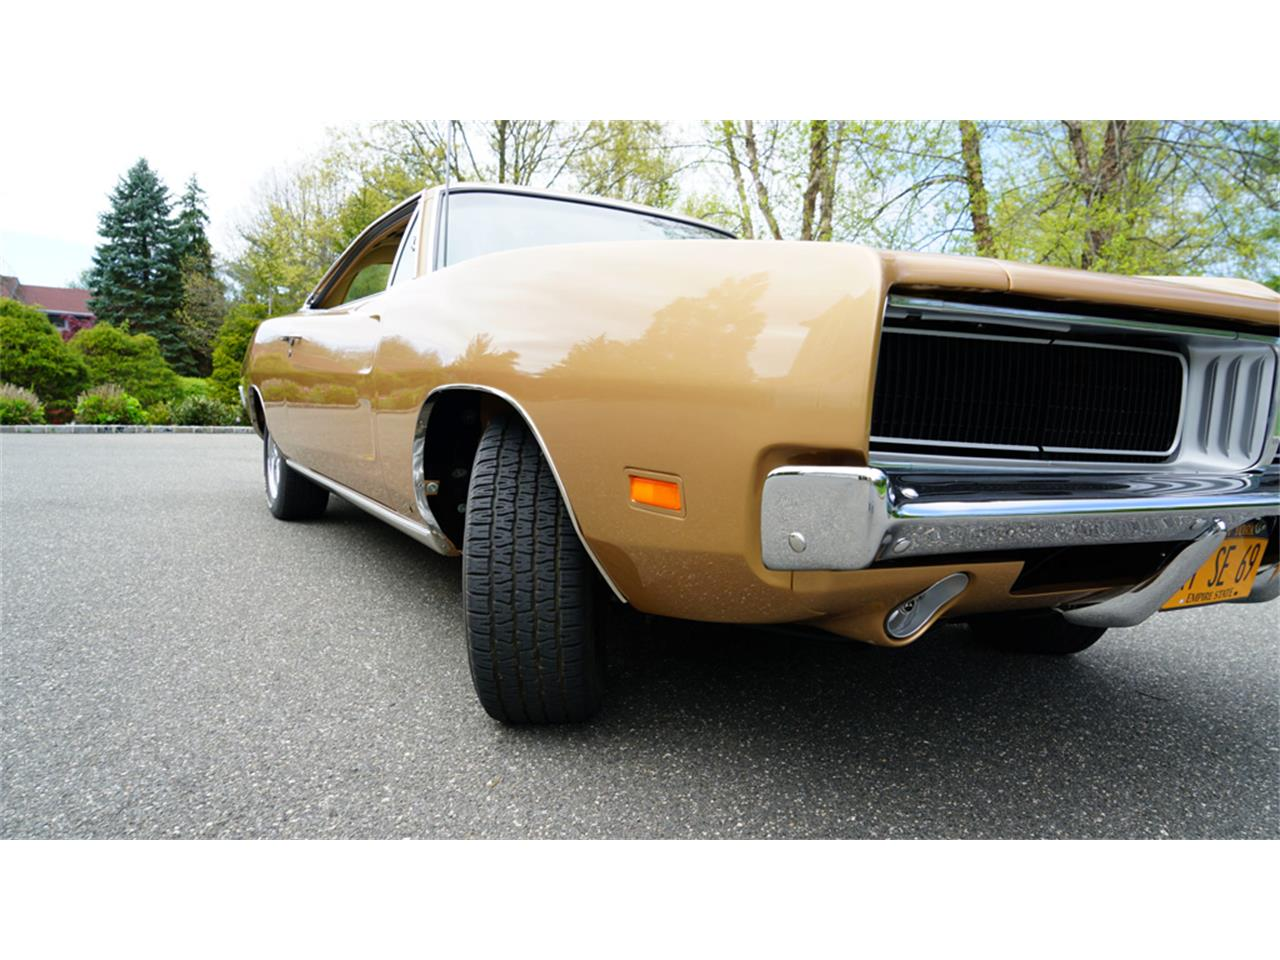 Large Picture of '69 Dodge Charger R/T located in Old Bethpage New York - $83,900.00 - Q1UM